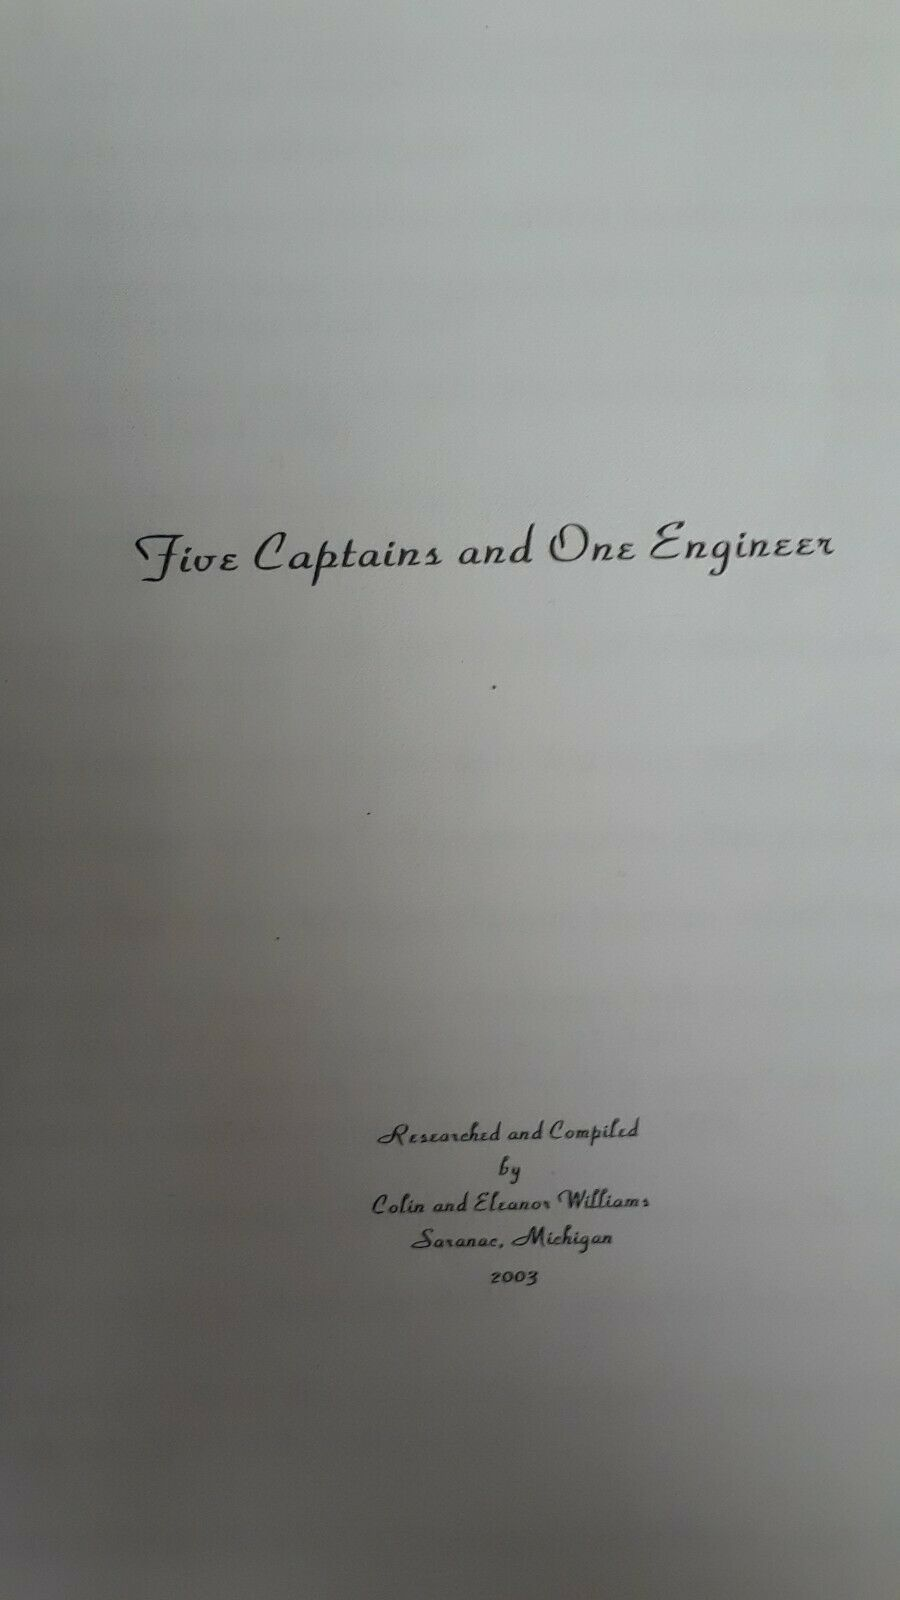 Primary image for Five Captains One Engineer Ackerman Family Genealogy Research History Great Lake